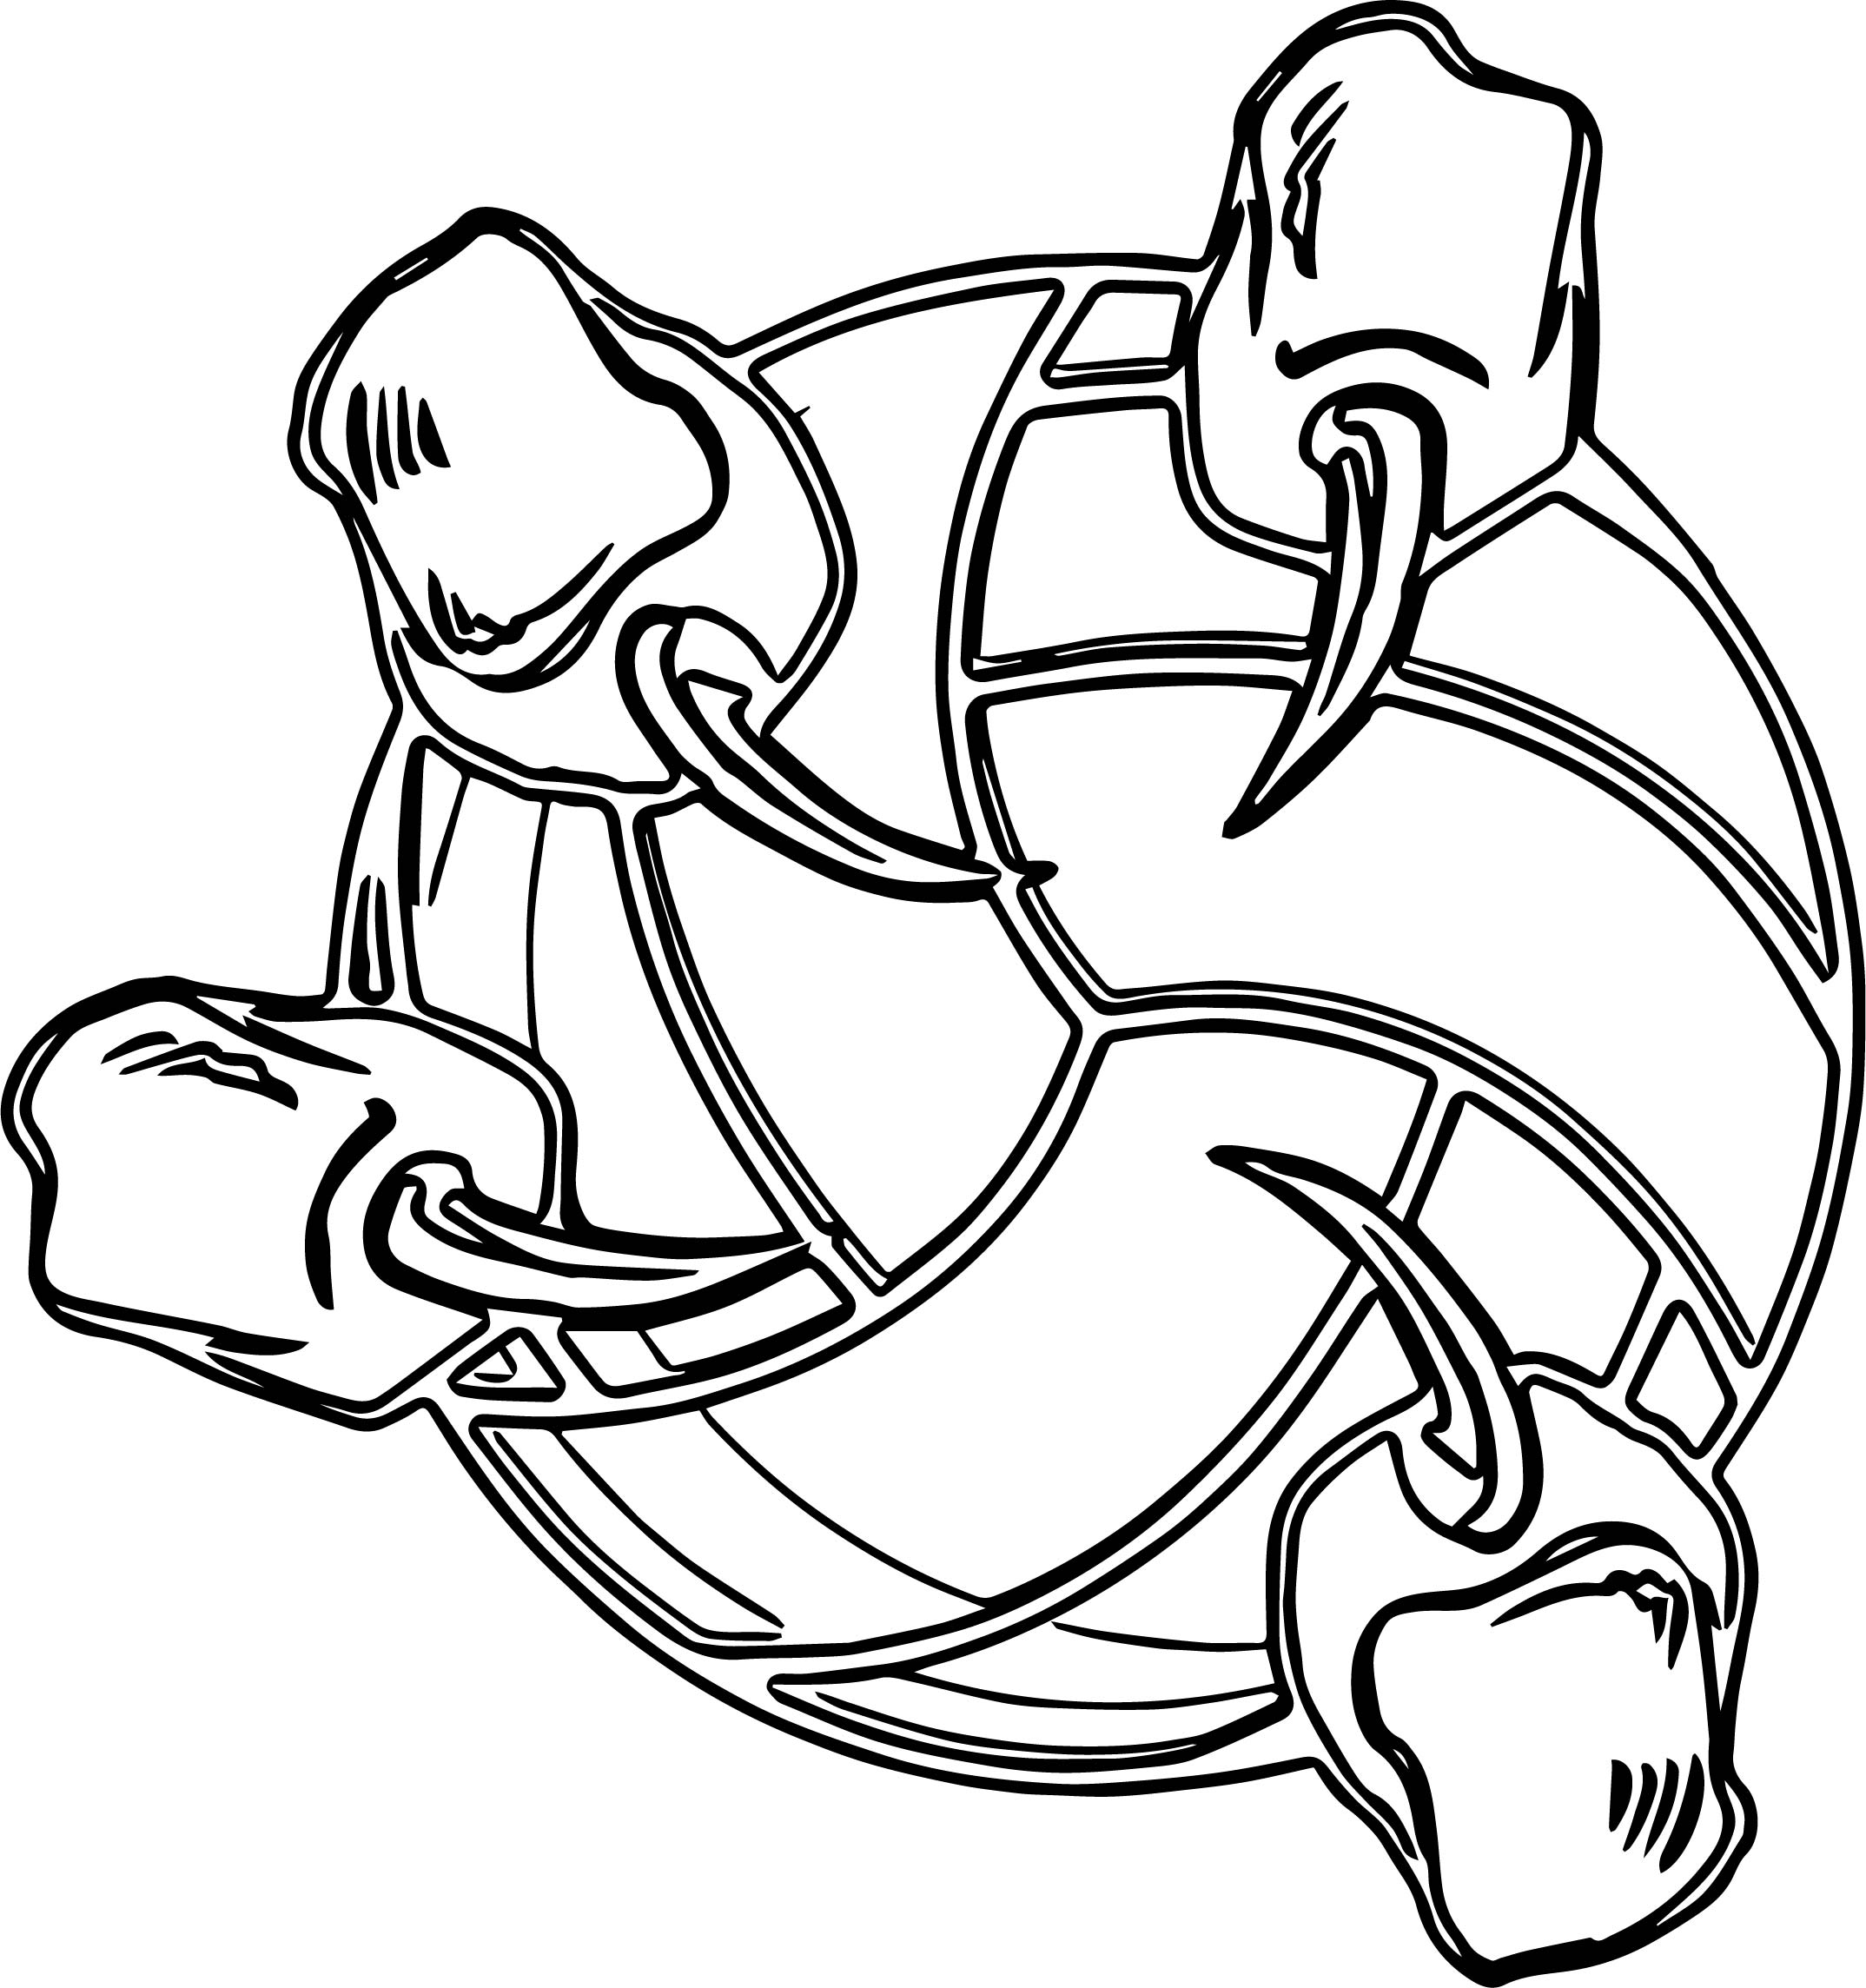 Tiger Hand Volleyball Coloring Page Wecoloringpage